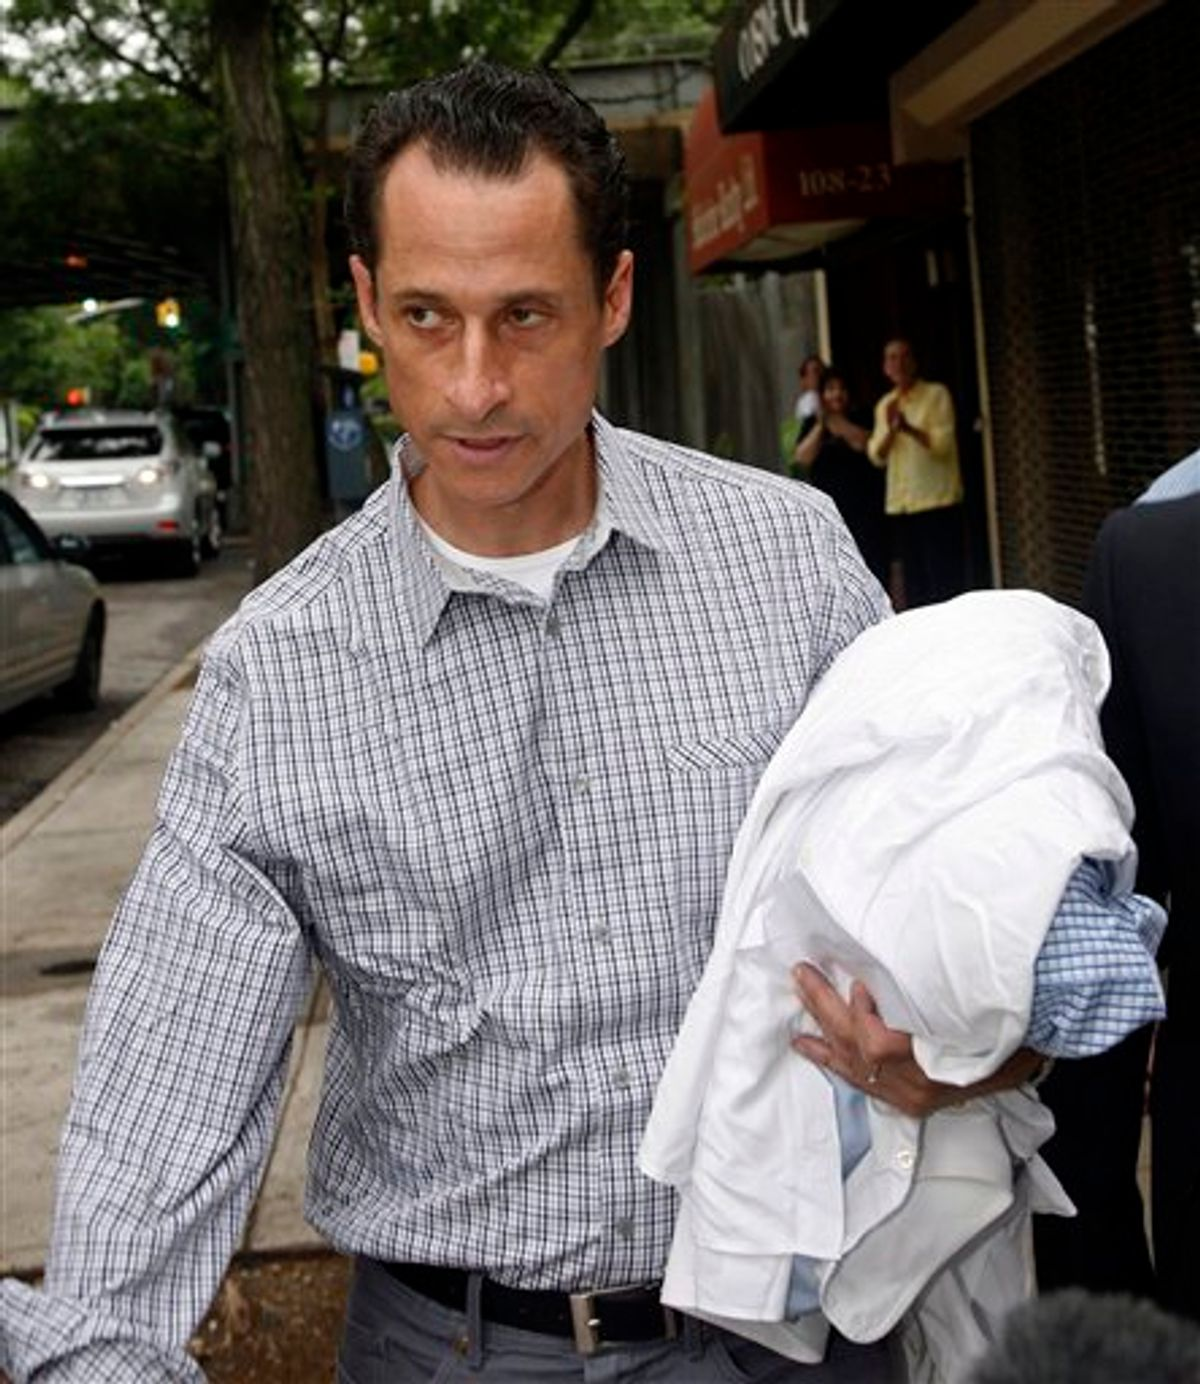 Rep. Anthony Weiner, D-N.Y., carries his laundry to a laundromat near his home in the Queens borough of New York, Saturday, June  11, 2011. The 46-year-old congressman acknowledged Friday that he had online contact with a 17-year-old girl from Delaware but said there was nothing inappropriate. (AP Photo/David Karp) (AP)